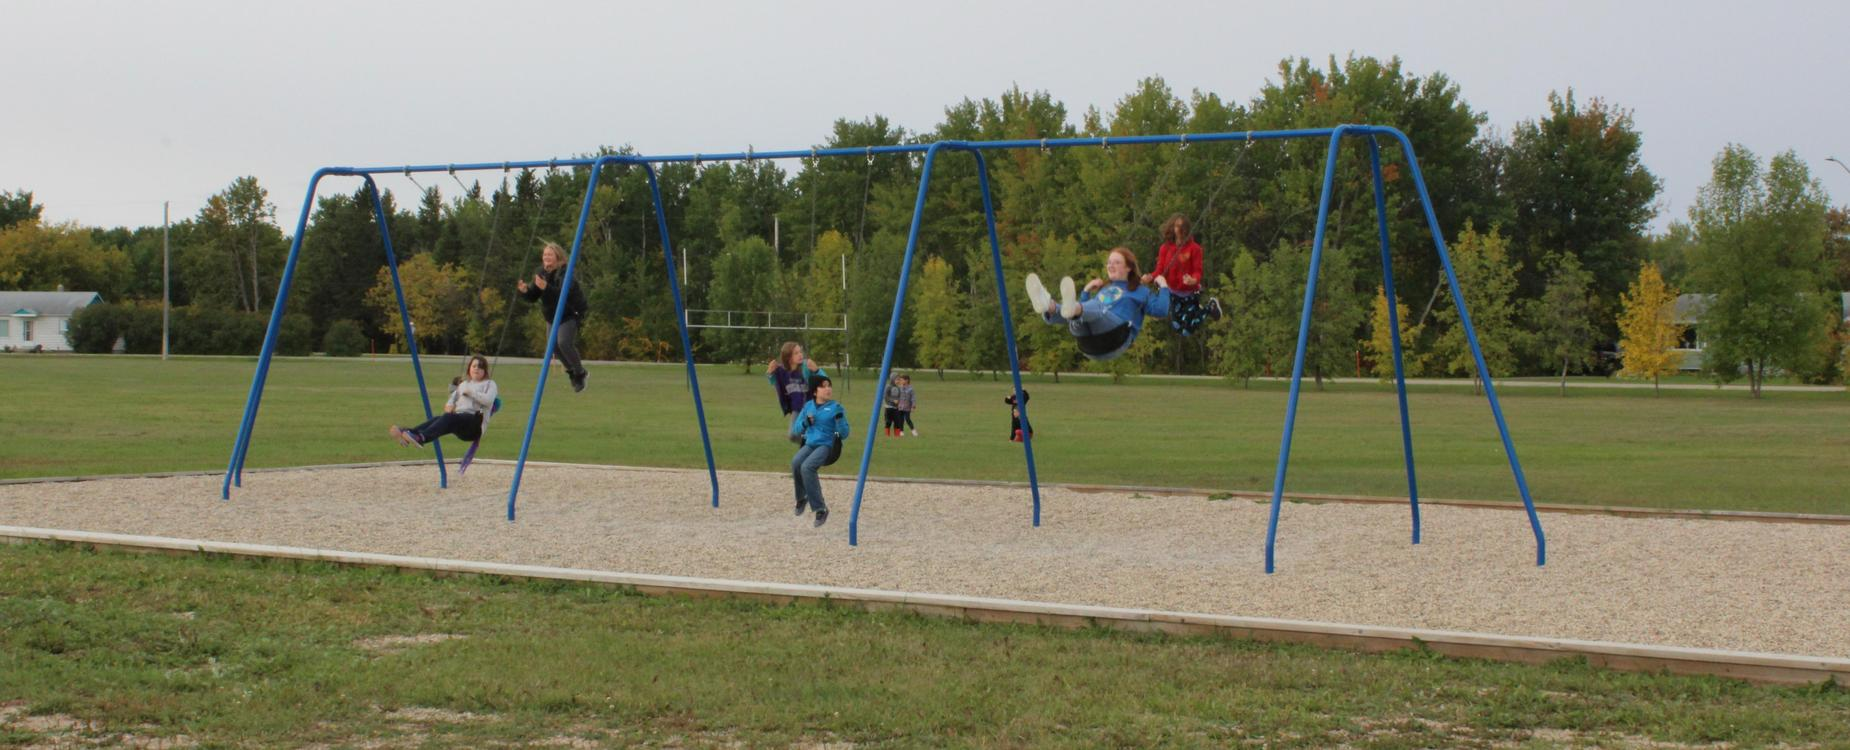 children on swing set in playground